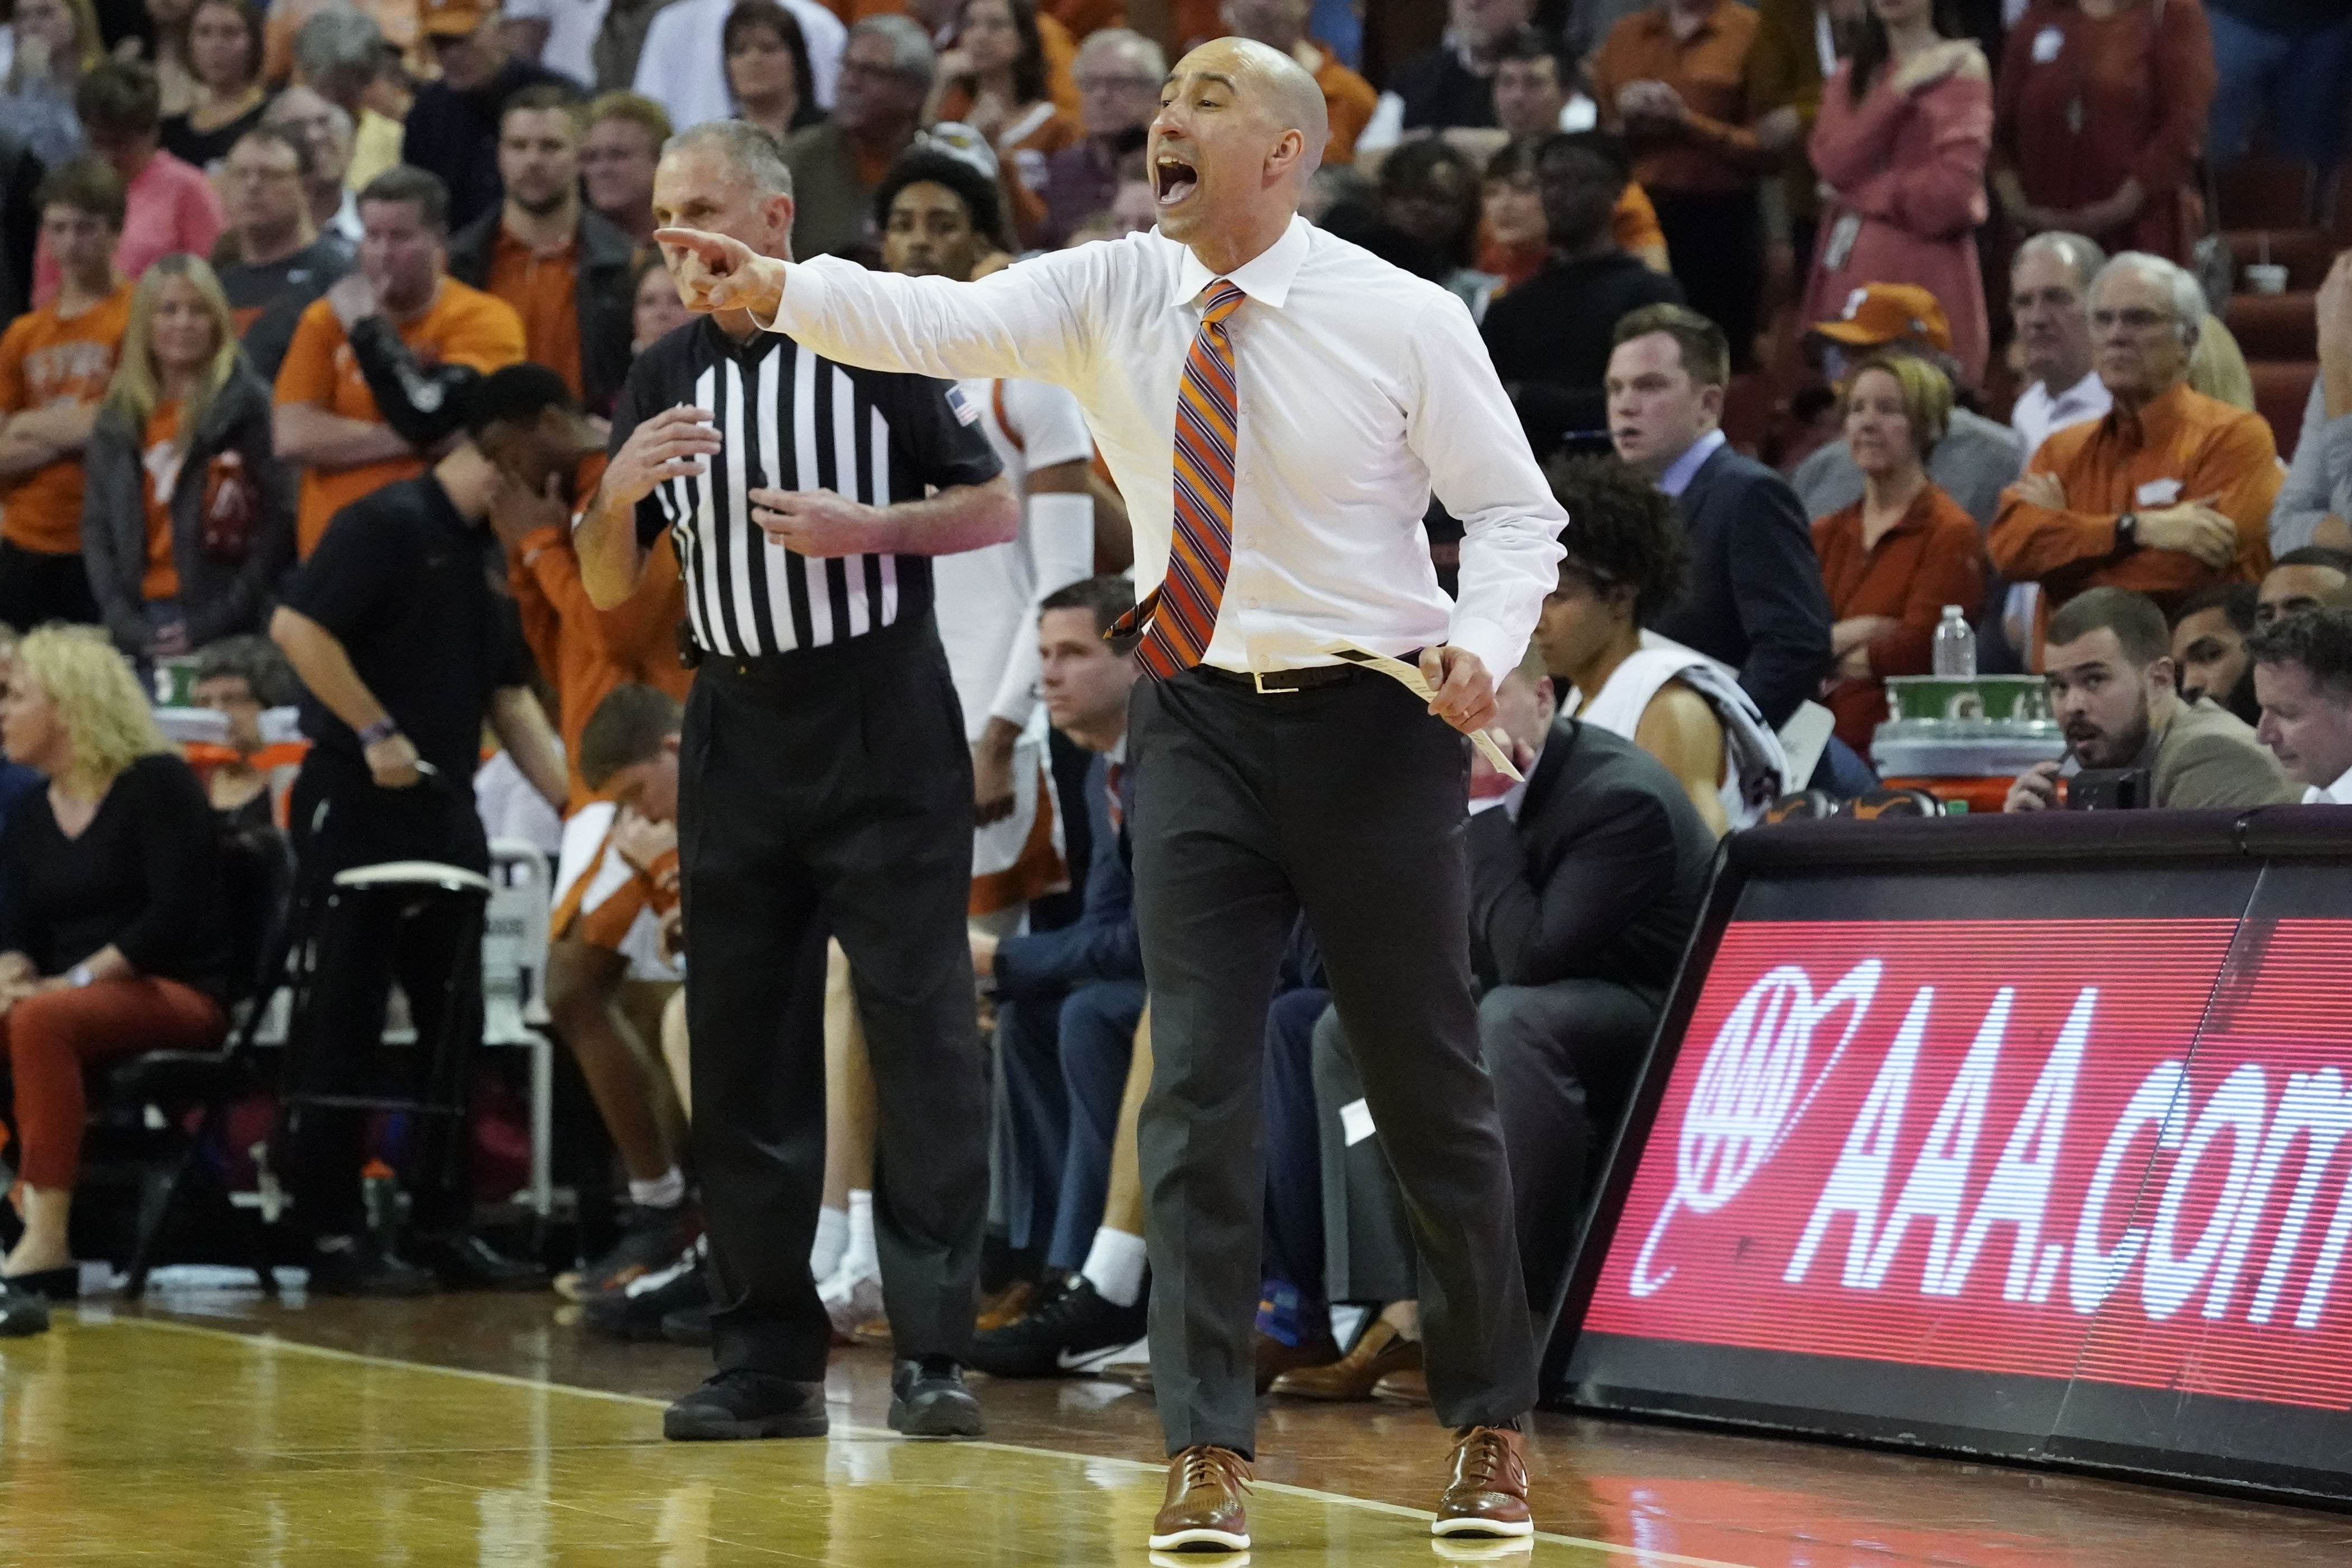 Texas Basketball: Longhorns Face Plant in Ames